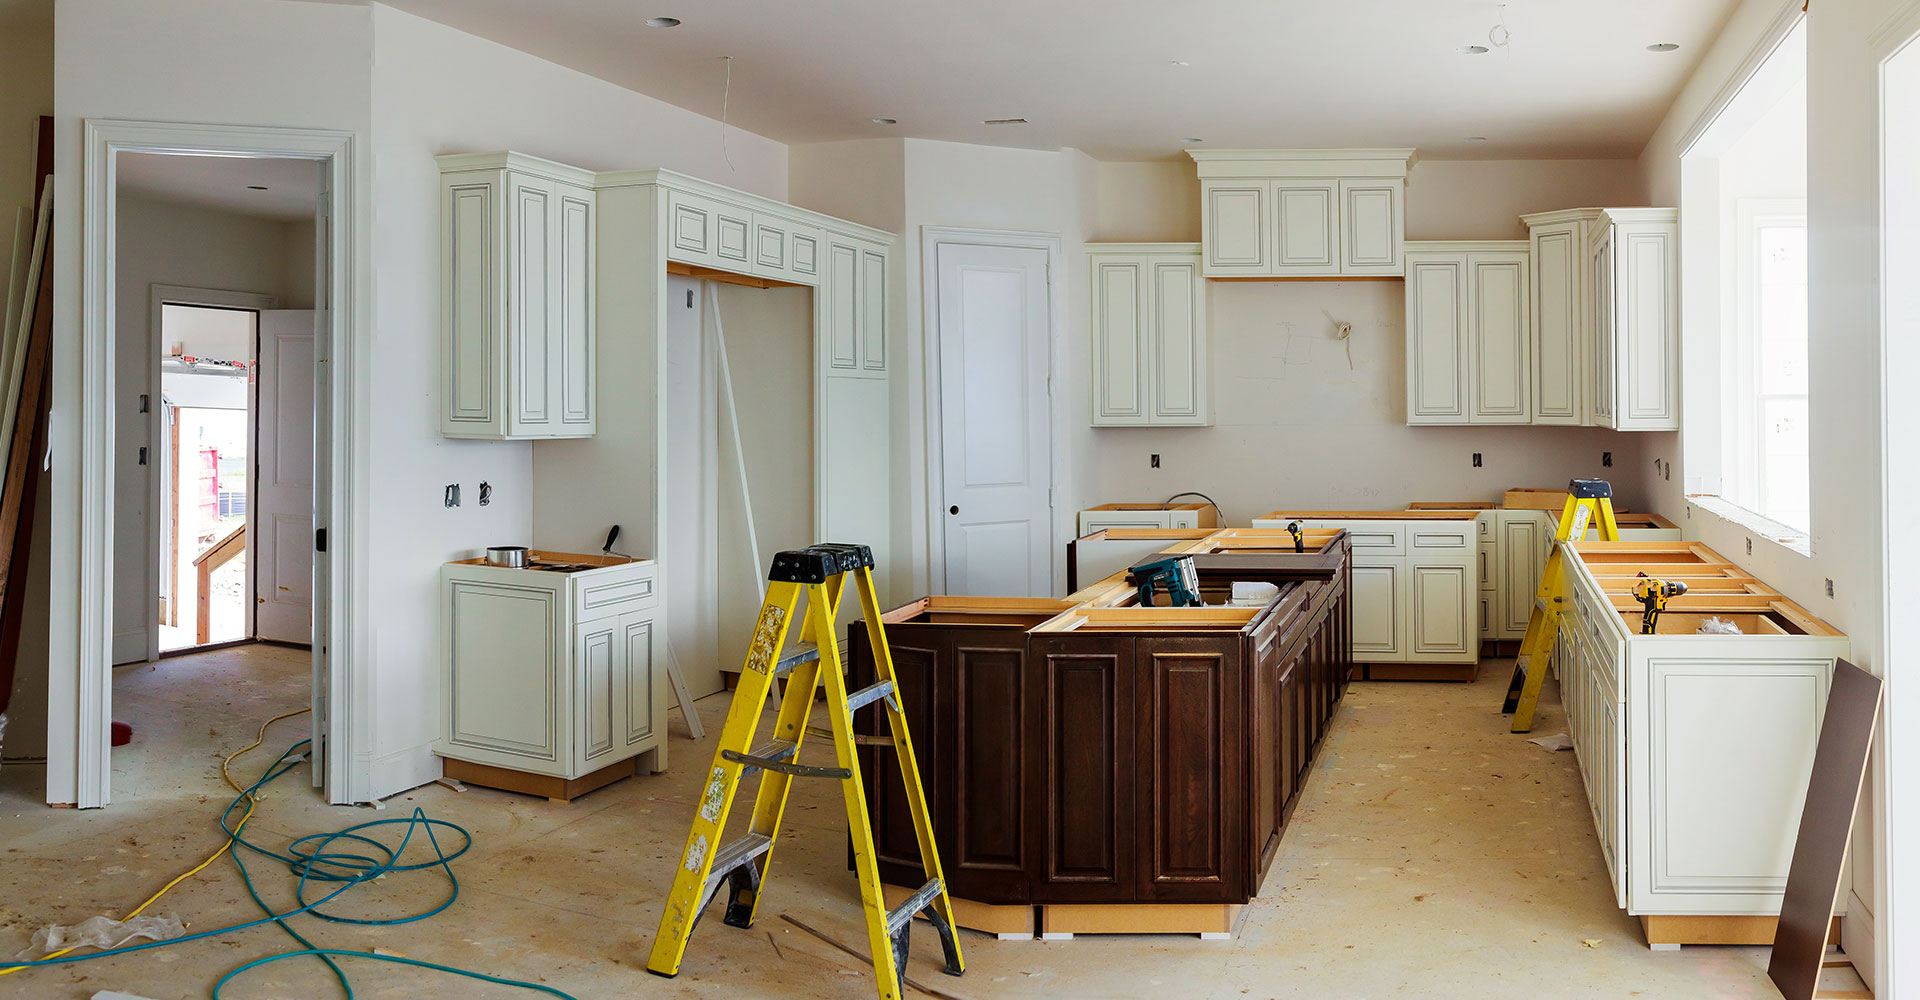 Top 7 Things You Need to Know Before Renovating Your Kitchen